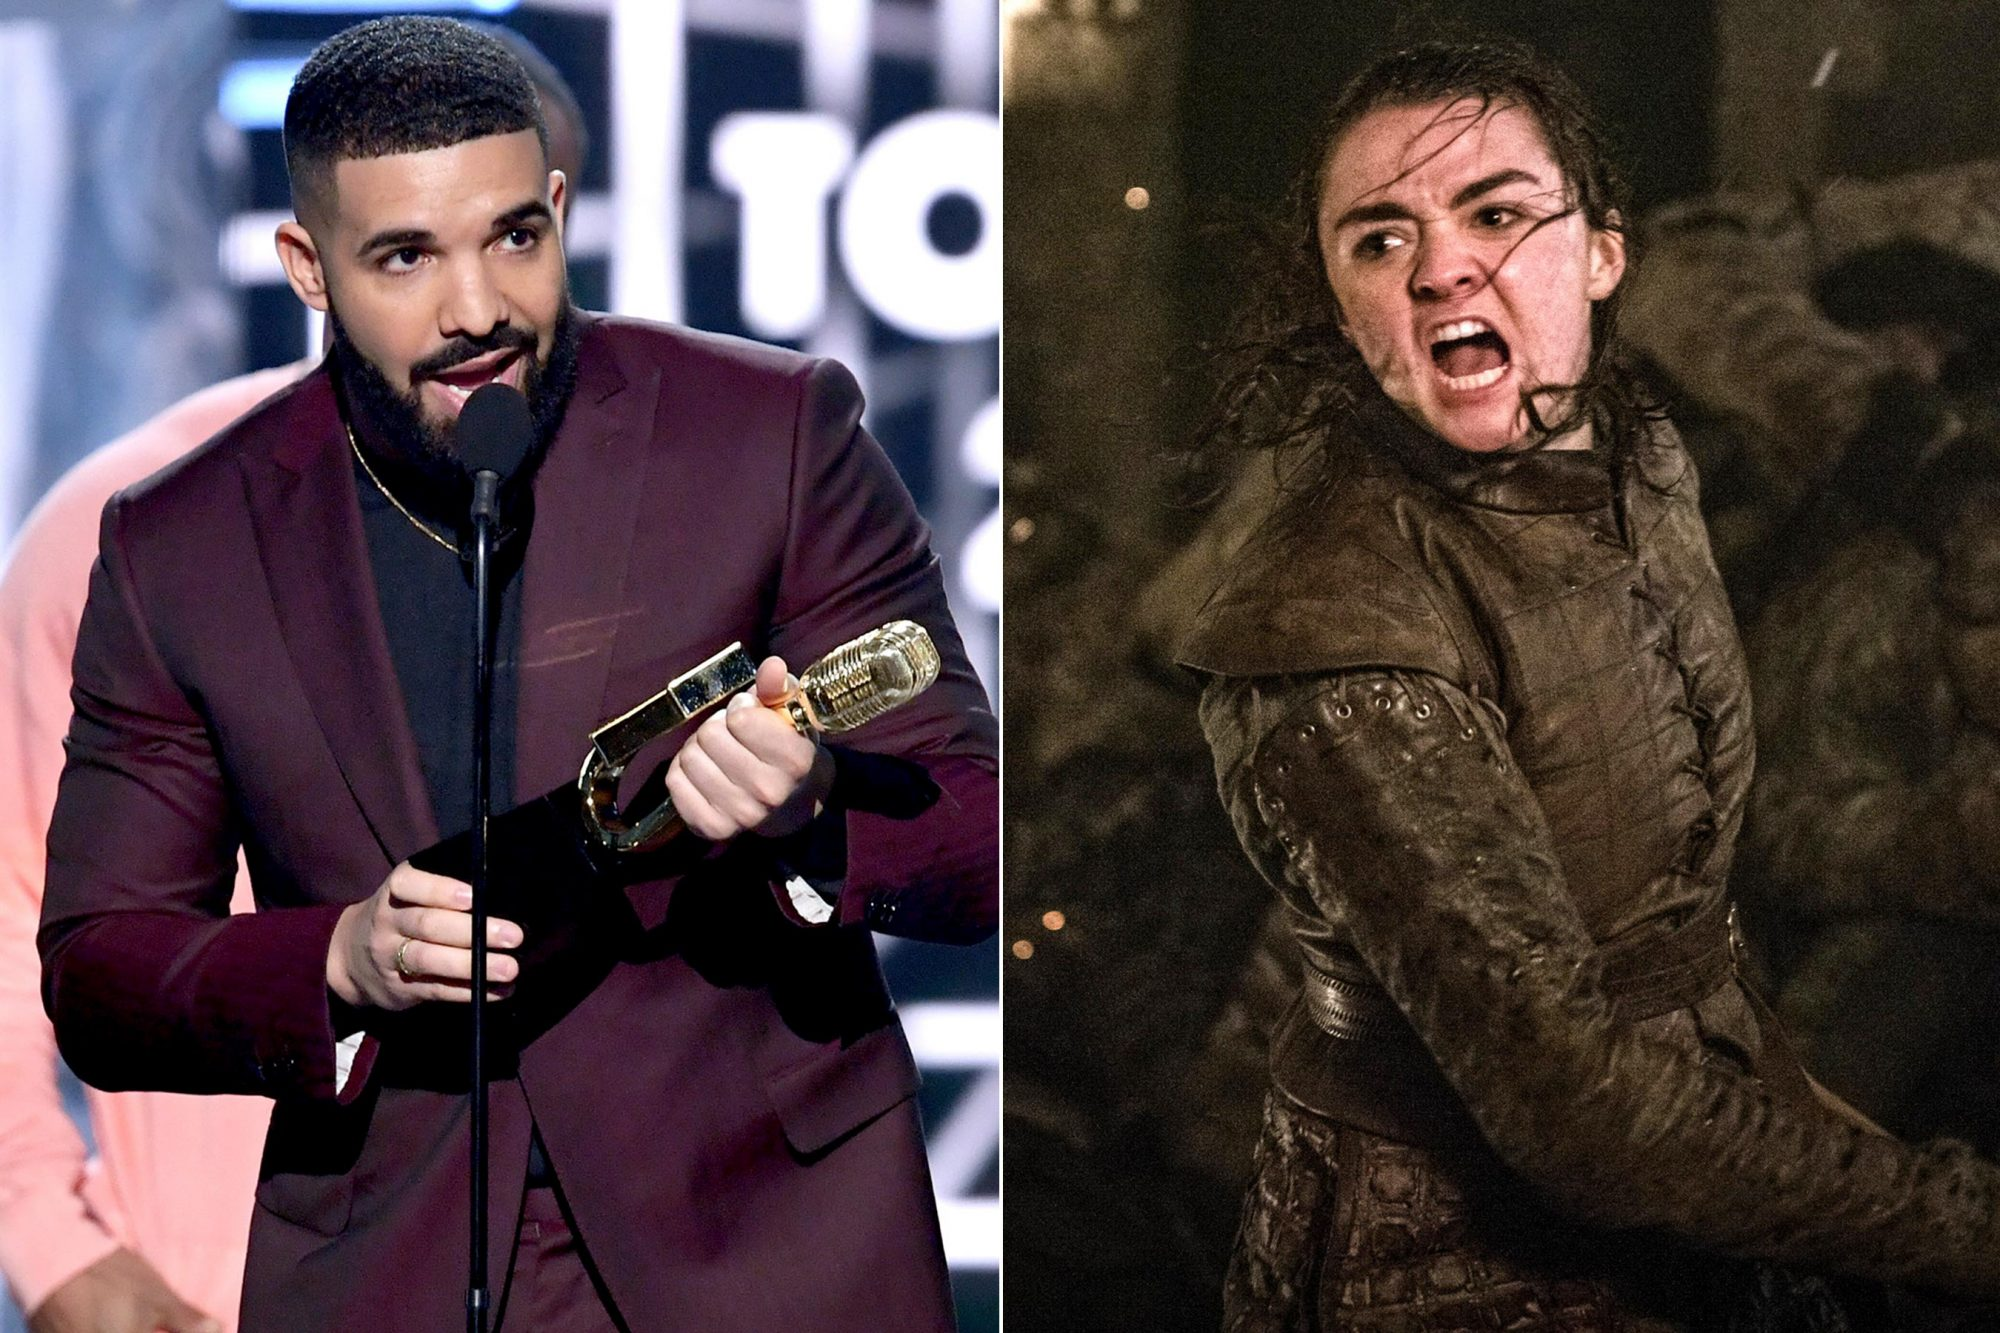 "LAS VEGAS, NEVADA - MAY 01: Drake accepts the Top Billboard 200 Album award for 'Scorpion' onstage during the 2019 Billboard Music Awards at MGM Grand Garden Arena on May 01, 2019 in Las Vegas, Nevada. (Photo by Kevin Winter/Getty Images for dcp) Maisie Williams as Arya Stark The third episode of Game of Thrones' final season, entitled, ""The Long Night""."